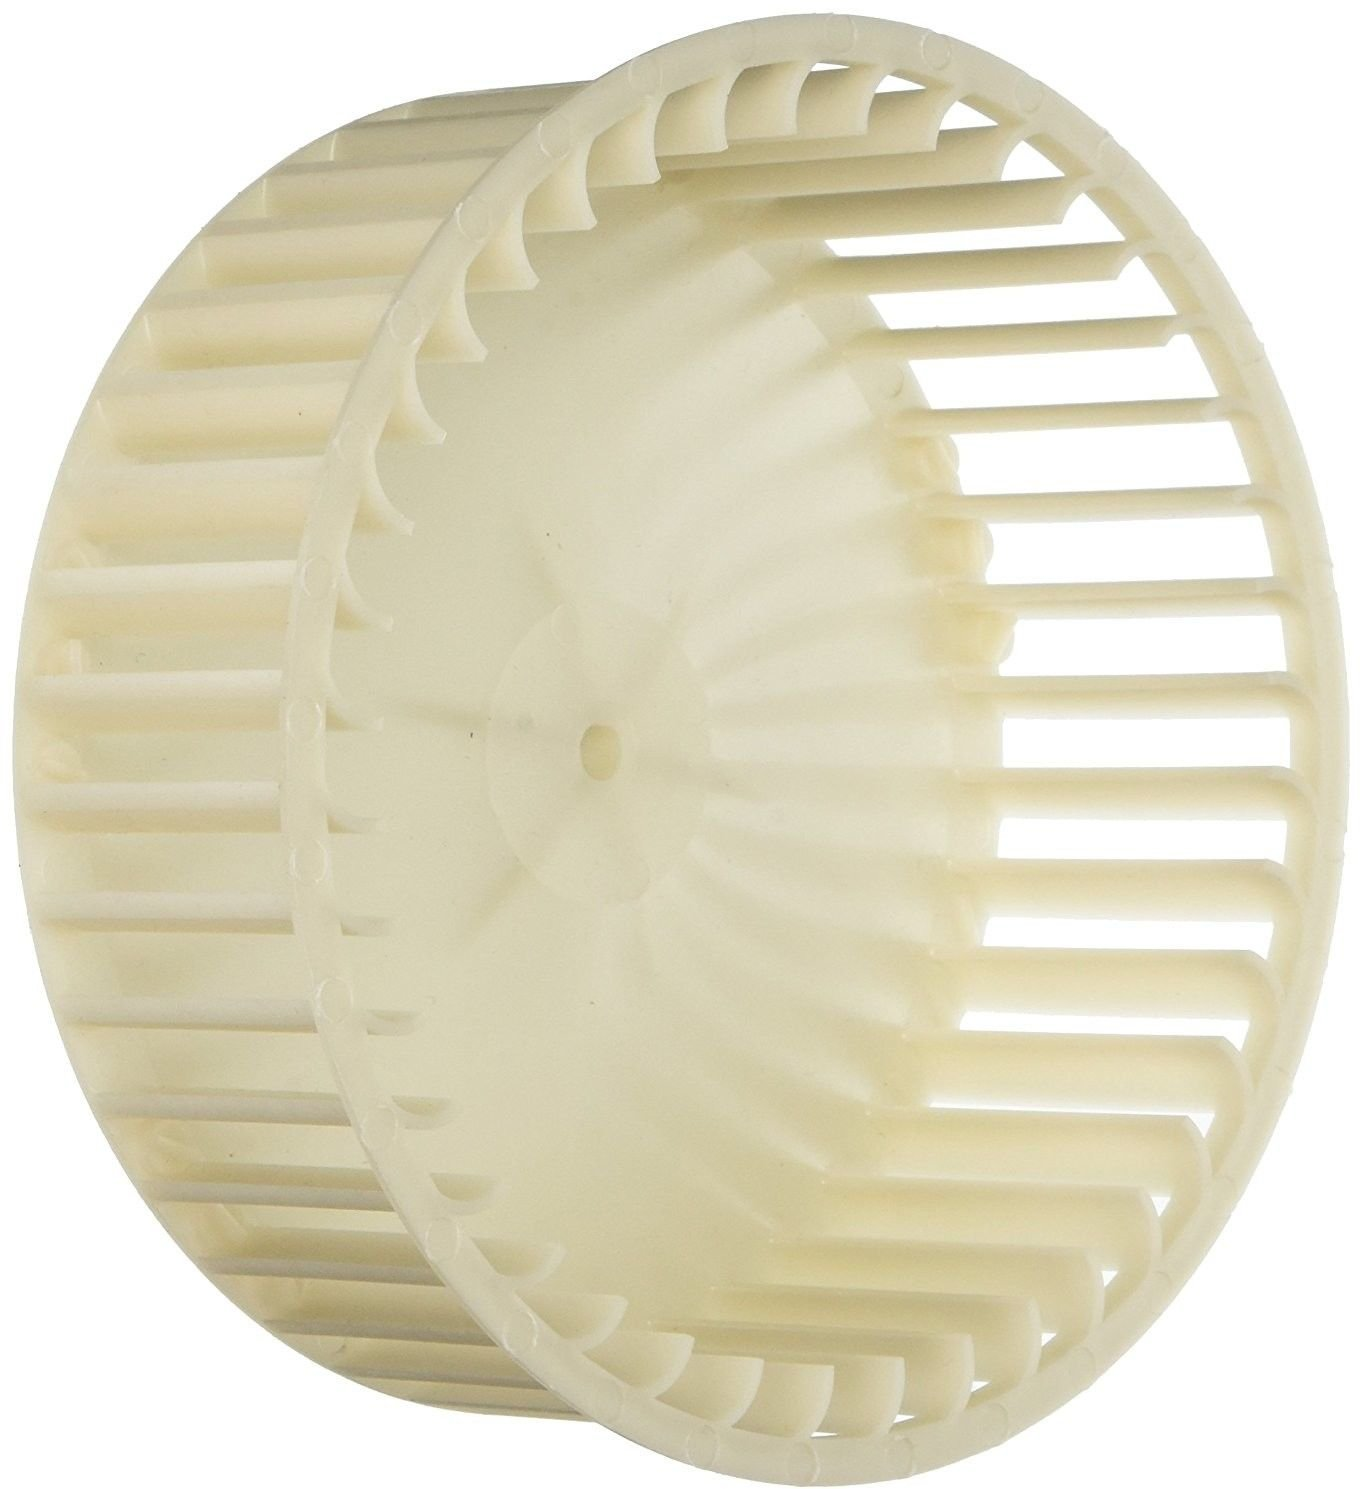 NEBOO SNT5901A000 for Broan/Nutone Bathroom Fan Blower Wheel Squirrel Cage